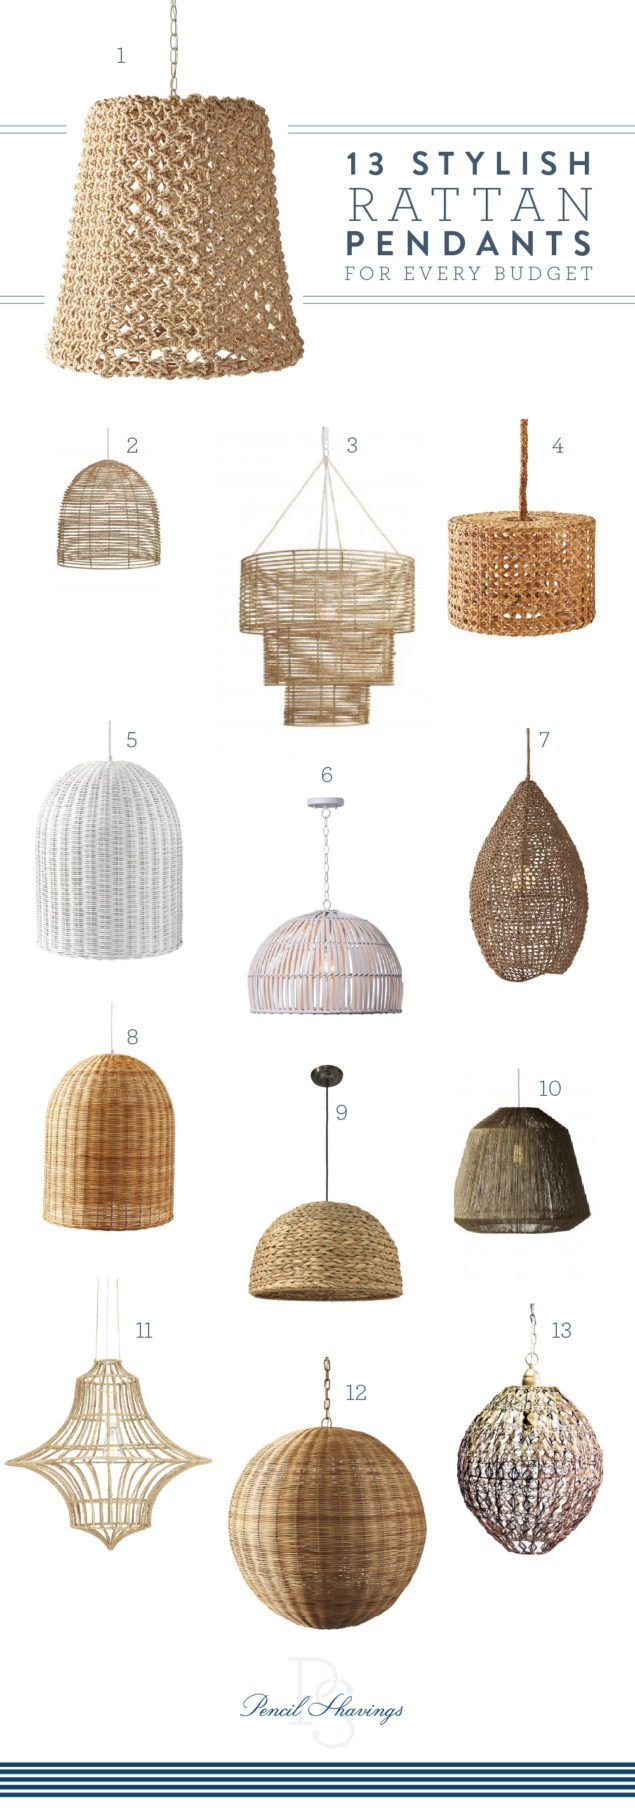 Rattan Pendants are having a moment | Kücheninsel beleuchtung ...